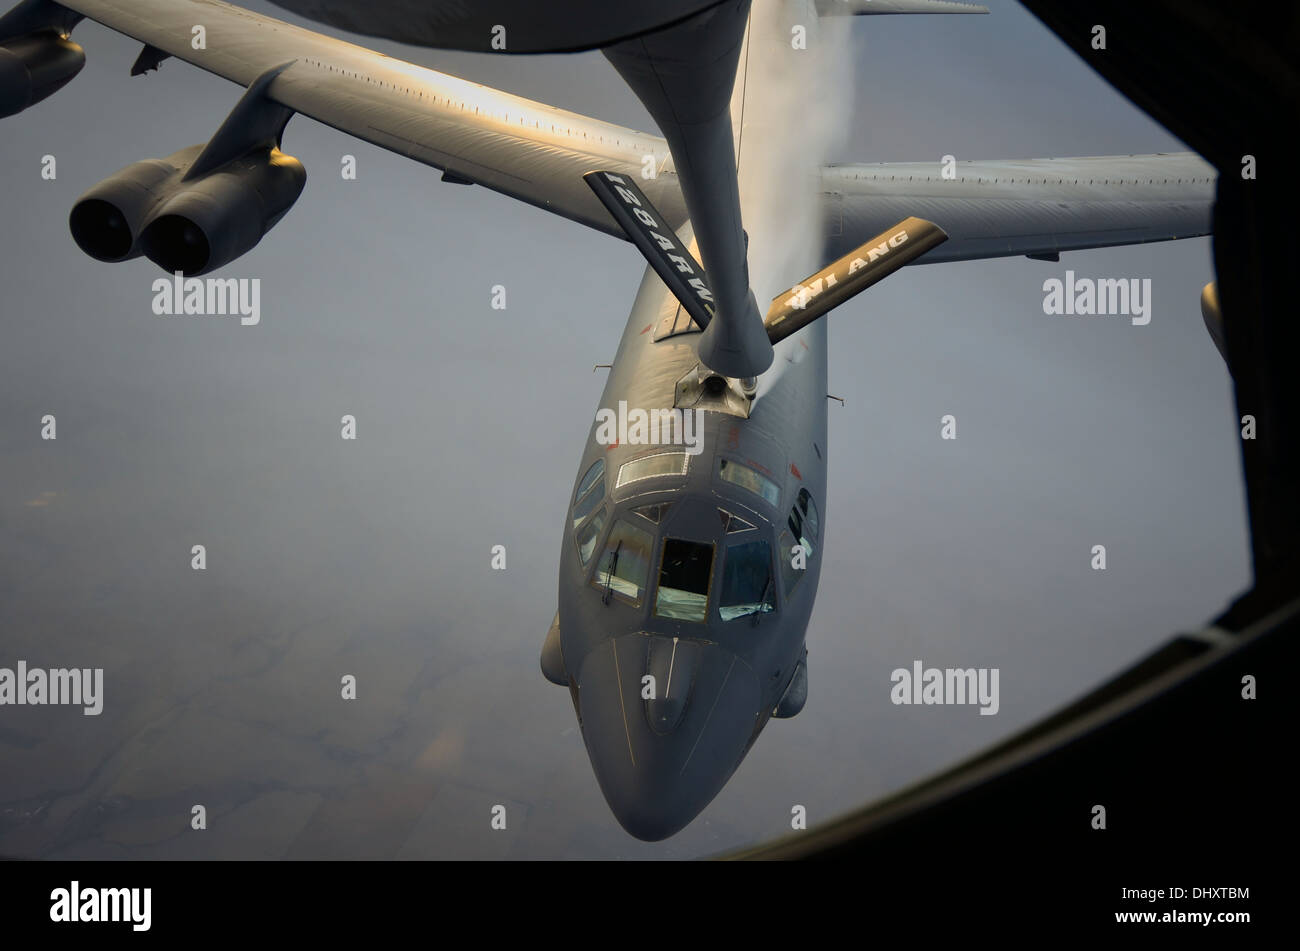 Members of the 128th Air Refueling Wing, Milwaukee, refuel a B-52 Stratofortress during a training exercise Nov. 3, 2013. - Stock Image